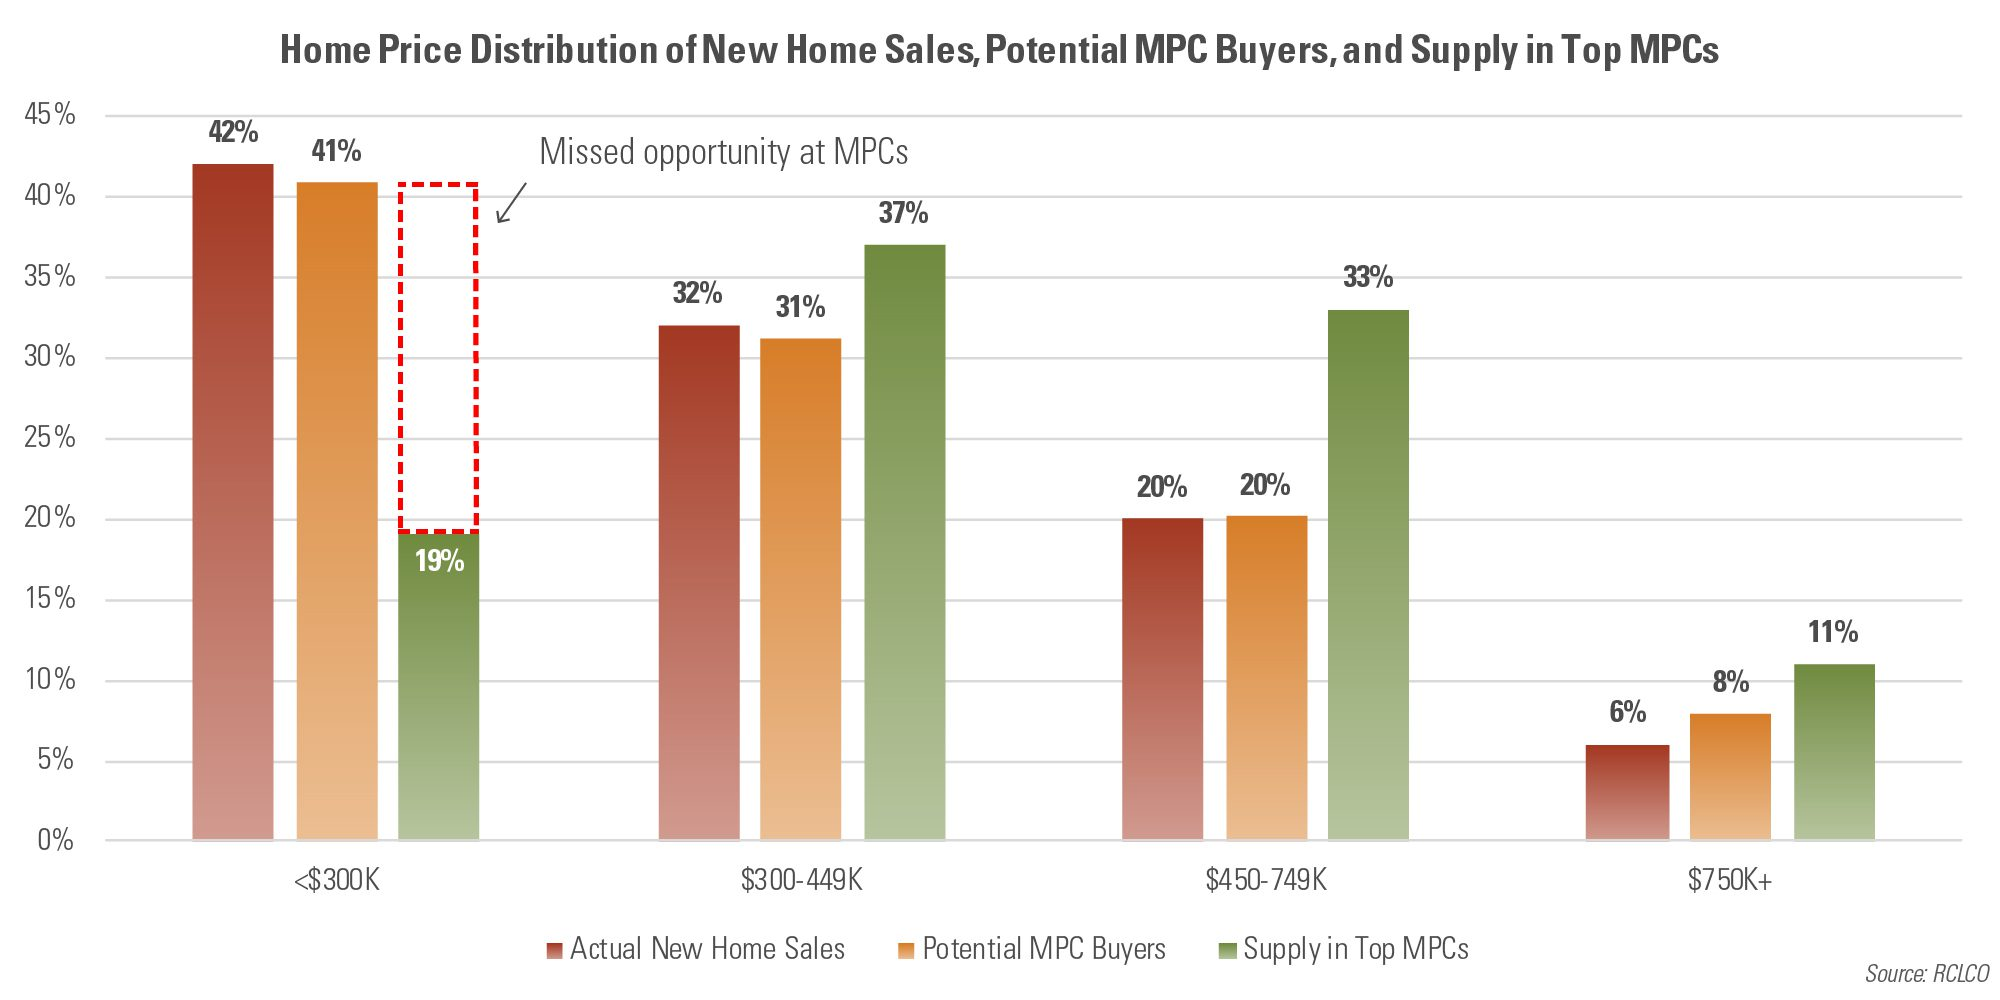 Home Price Distribution of New Home Sales, Potential MPC Buyers, and Supply in Top MPCs